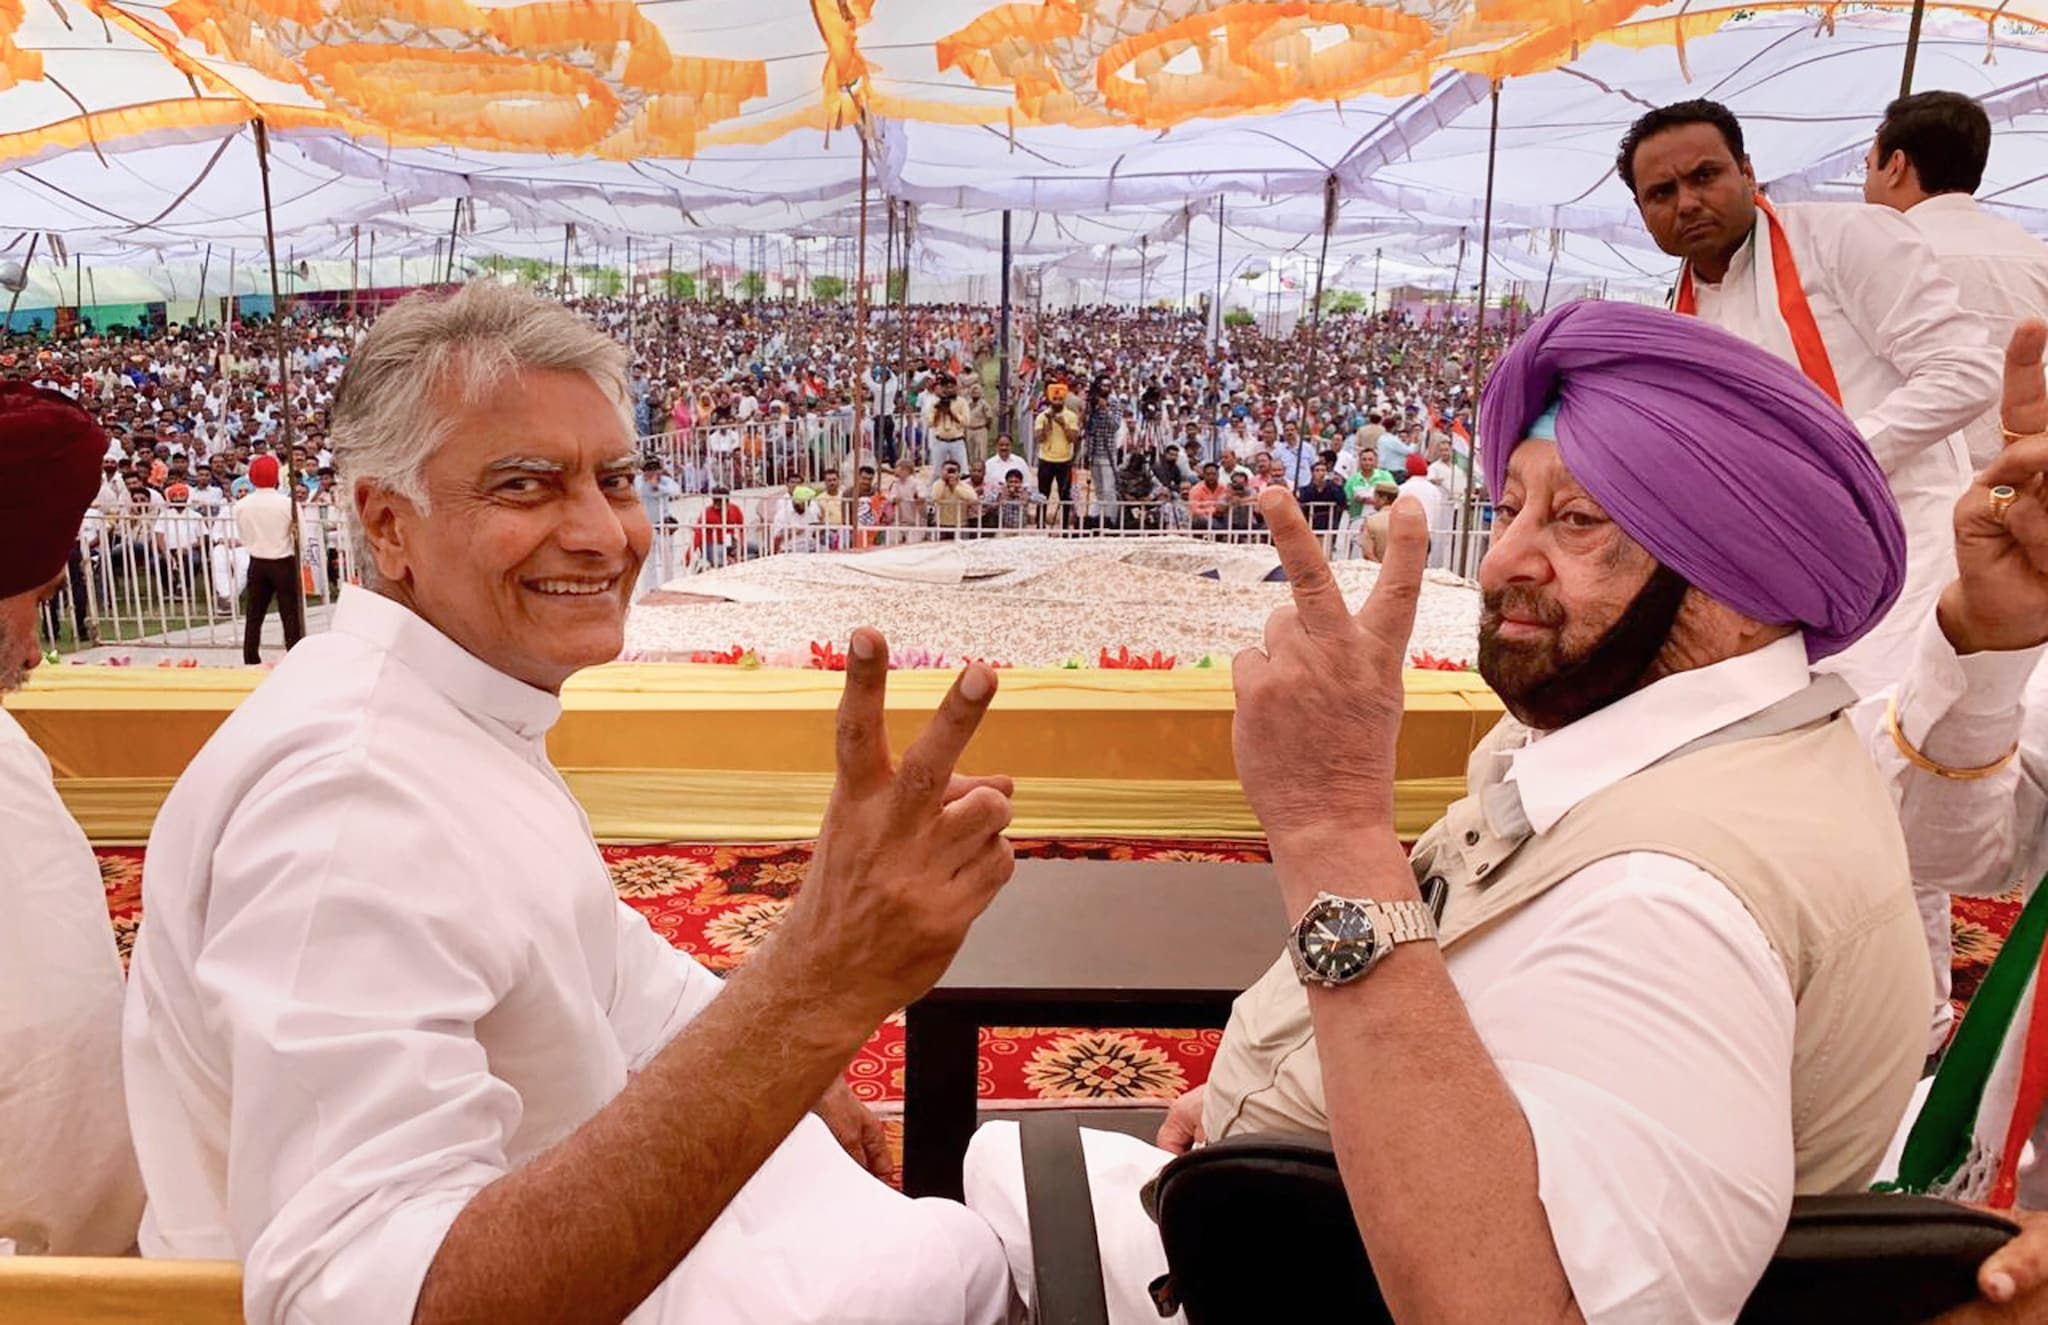 Pathankot: Punjab Chief Minister Amarinder Singh with Congress party's Gurdaspur candidate Sunil Jakhar during an election campaign rally for the ongoing Lok Sabha polls, in Pathankot, Saturday, May 11, 2019. (PTI Photo)(PTI5_11_2019_000074B)